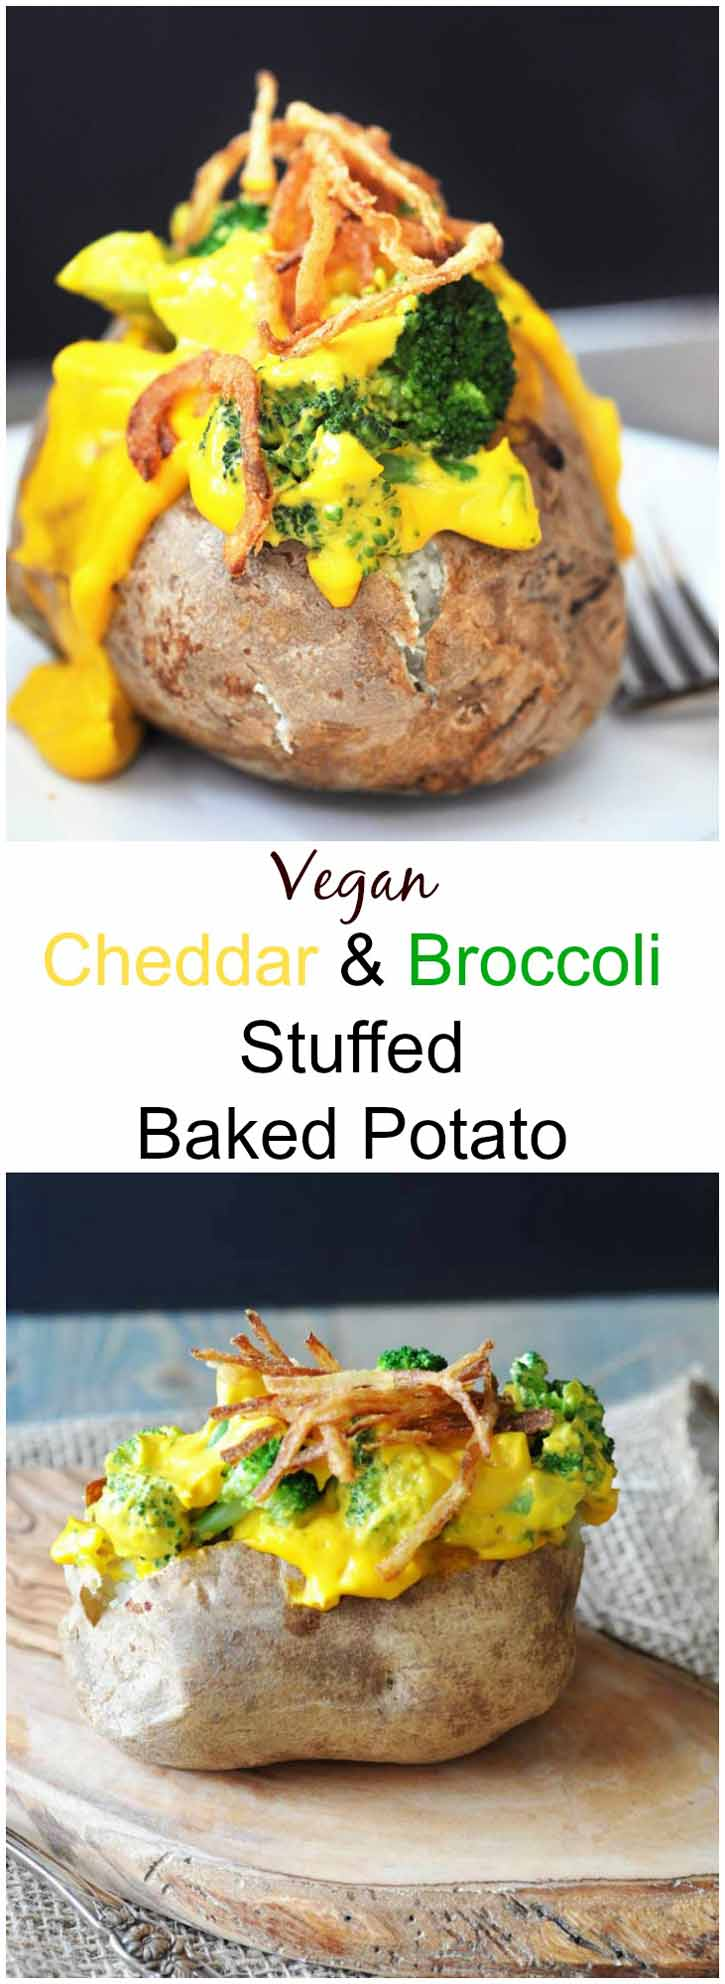 Vegan Cheddar & Broccoli Stuffed Baked Potato! Filled with our 6 Ingredient Vegan Cheddar Cheese Sauce and broccoli. The perfect easy weeknight meal. www.veganosity.com